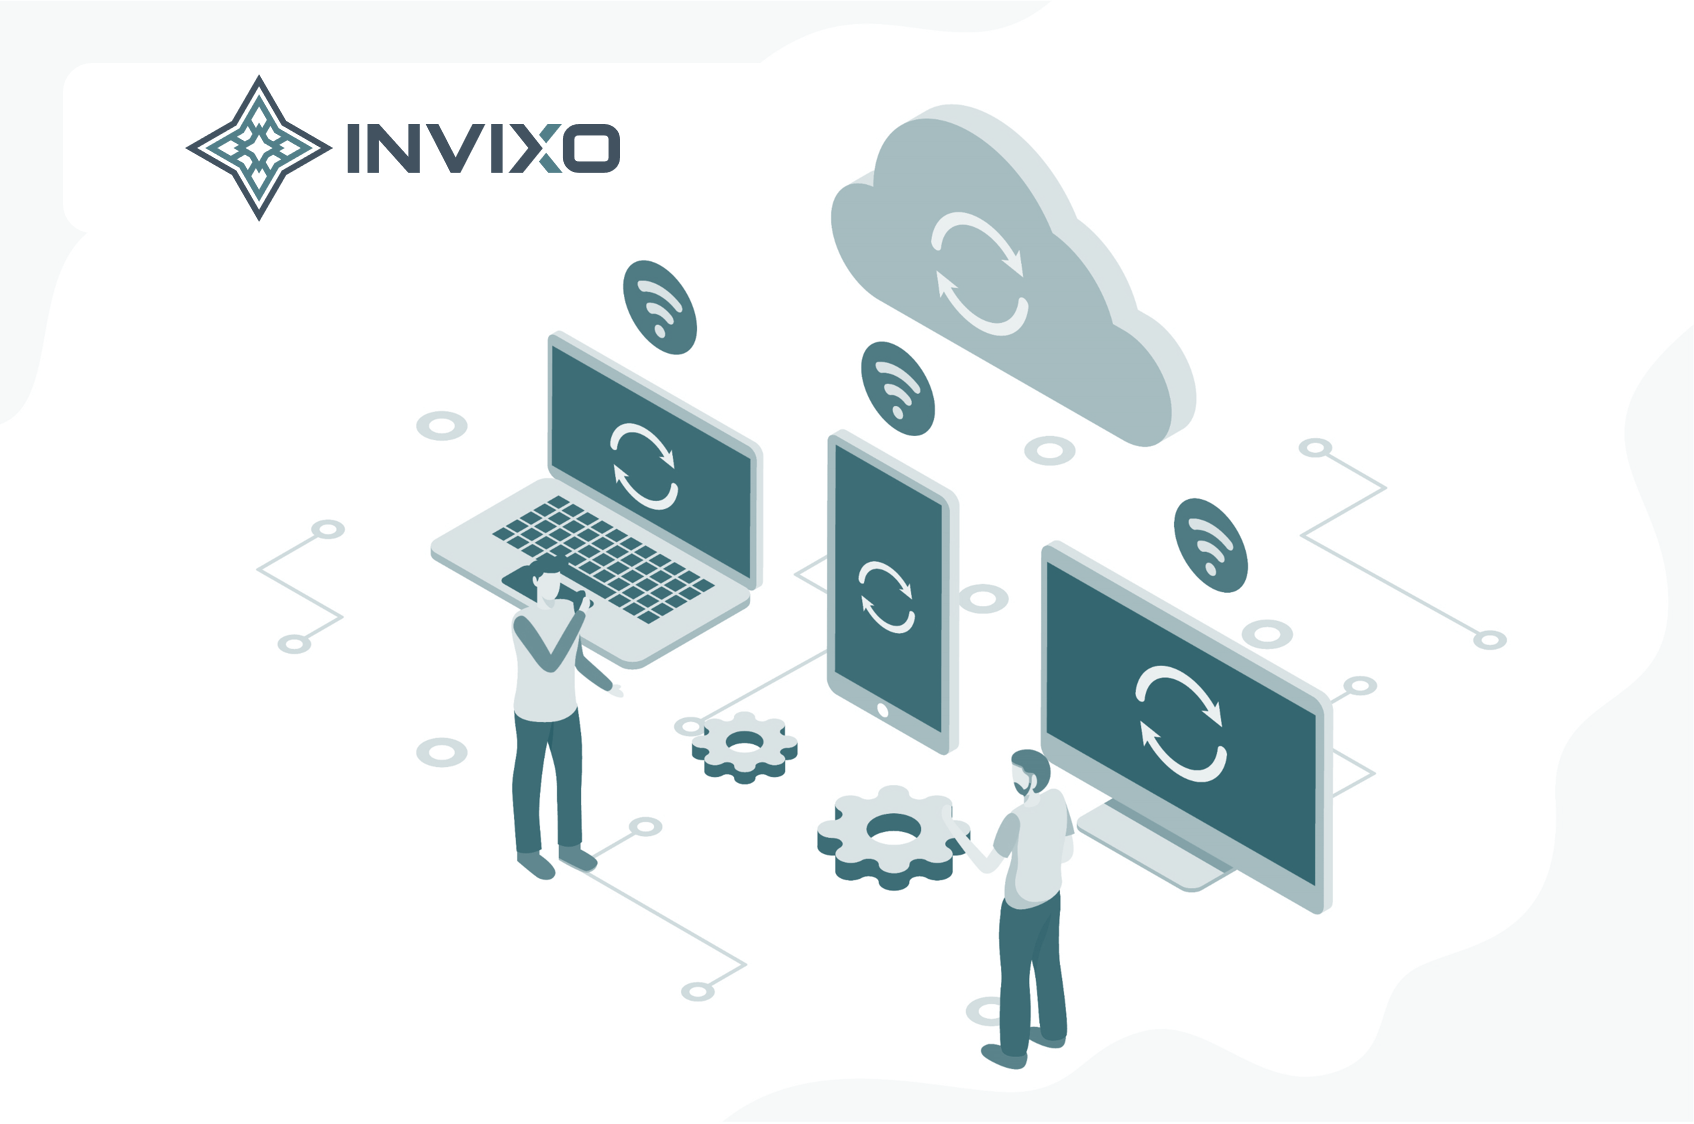 INVIXO – The Ultimate Name for Growing Digitizing Your Organization